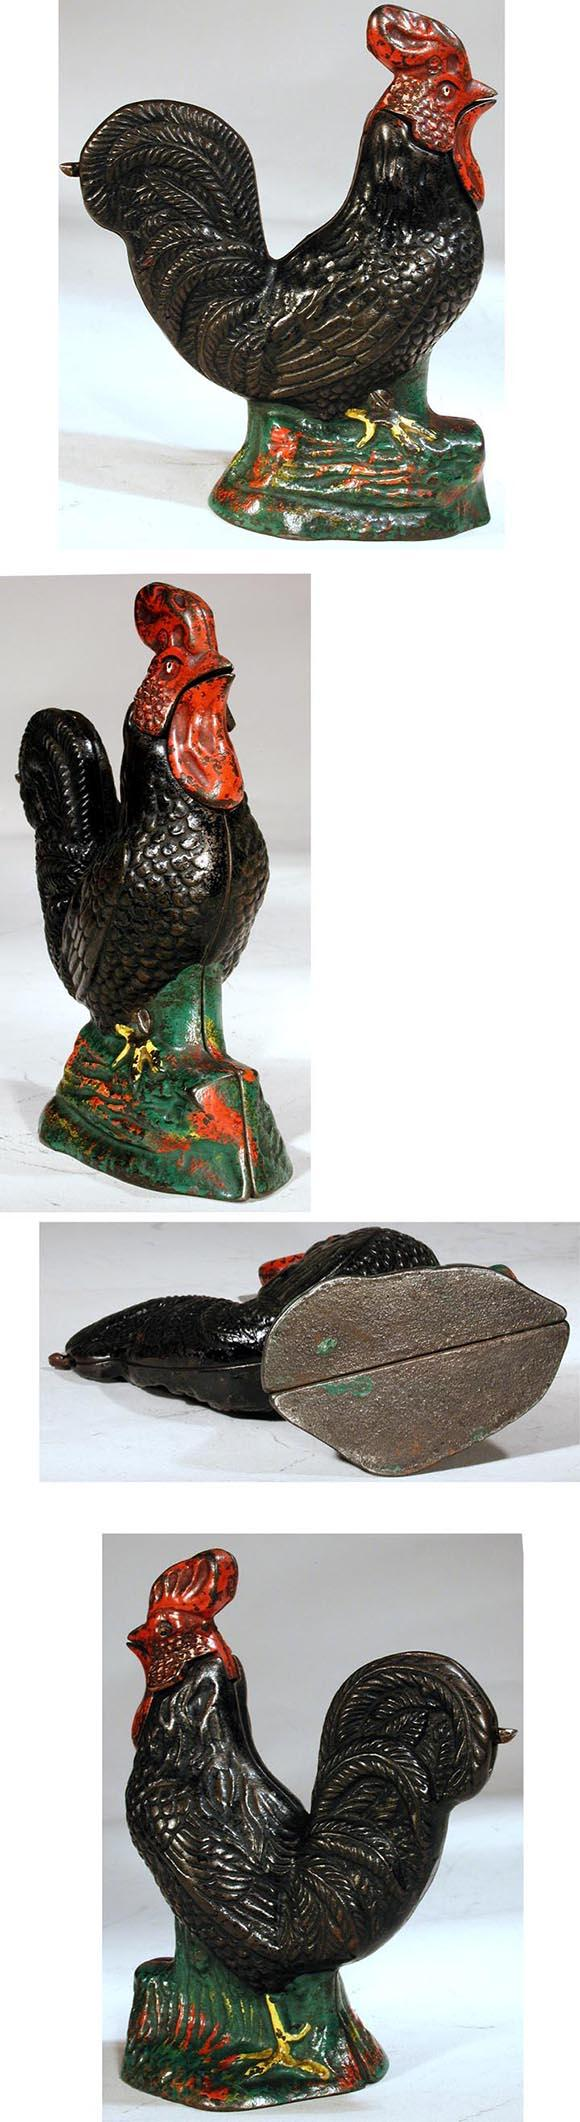 c.1880 Kyser and Rex Co., Cast Iron Mechanical Rooster Bank